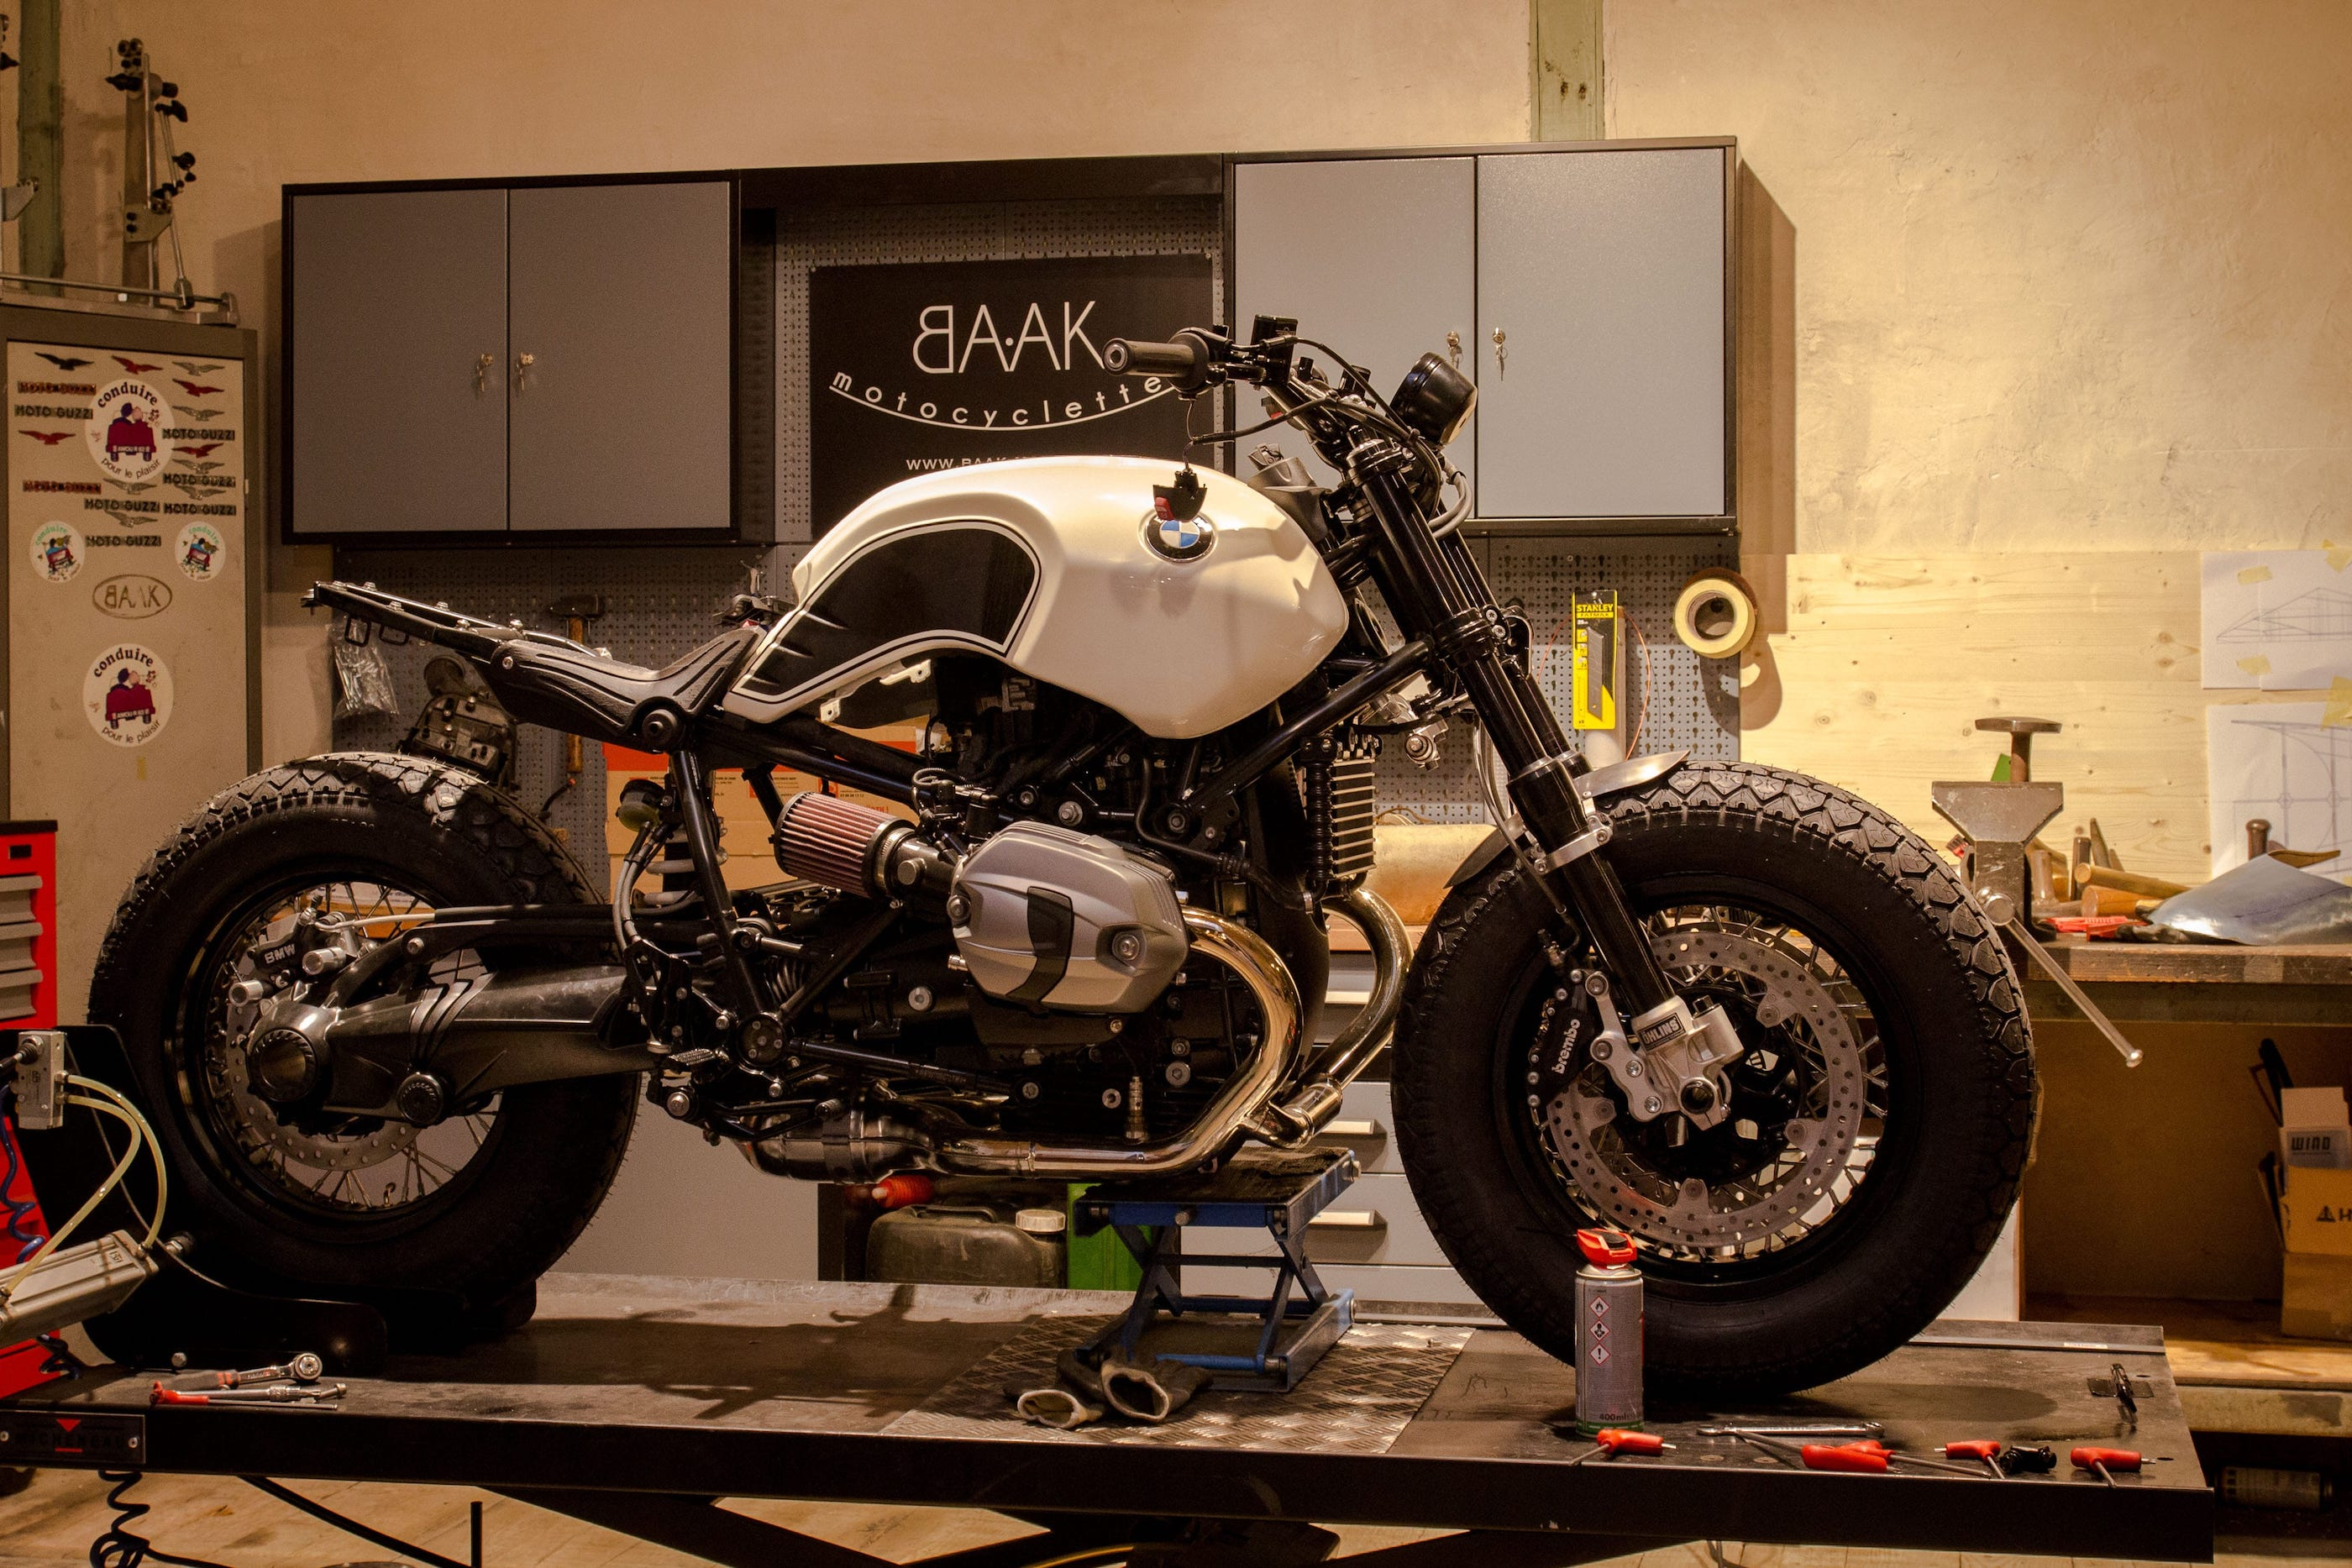 bmw ninet bobber la petite derni re de chez baak motocyclettes 4h10. Black Bedroom Furniture Sets. Home Design Ideas